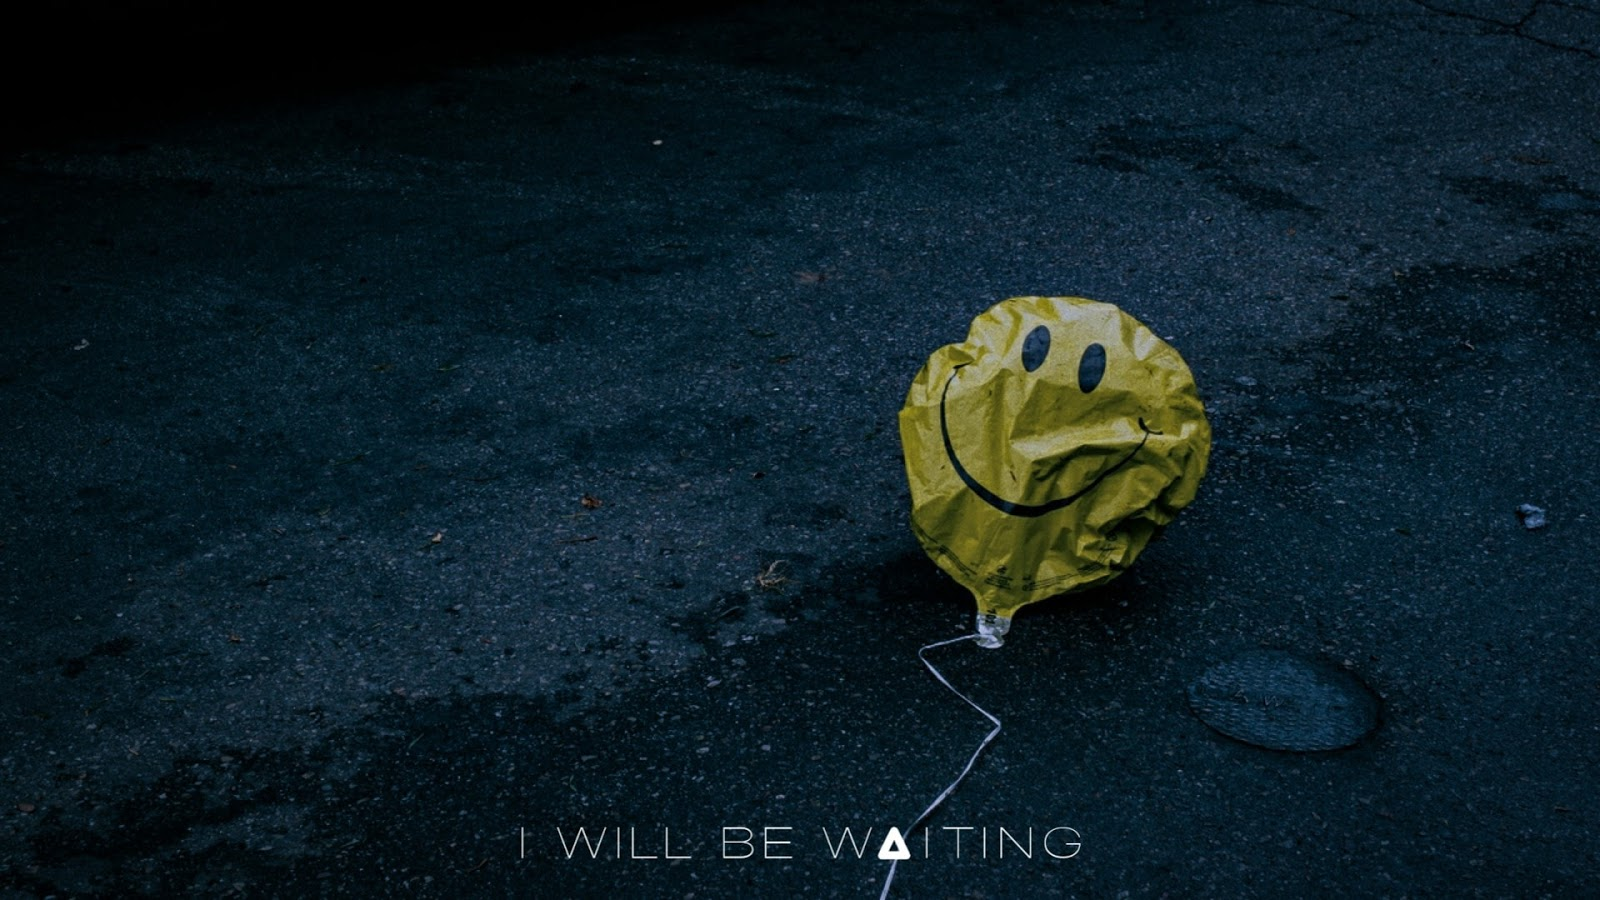 I Will Be Waiting ッ ぺ椅ヒクー